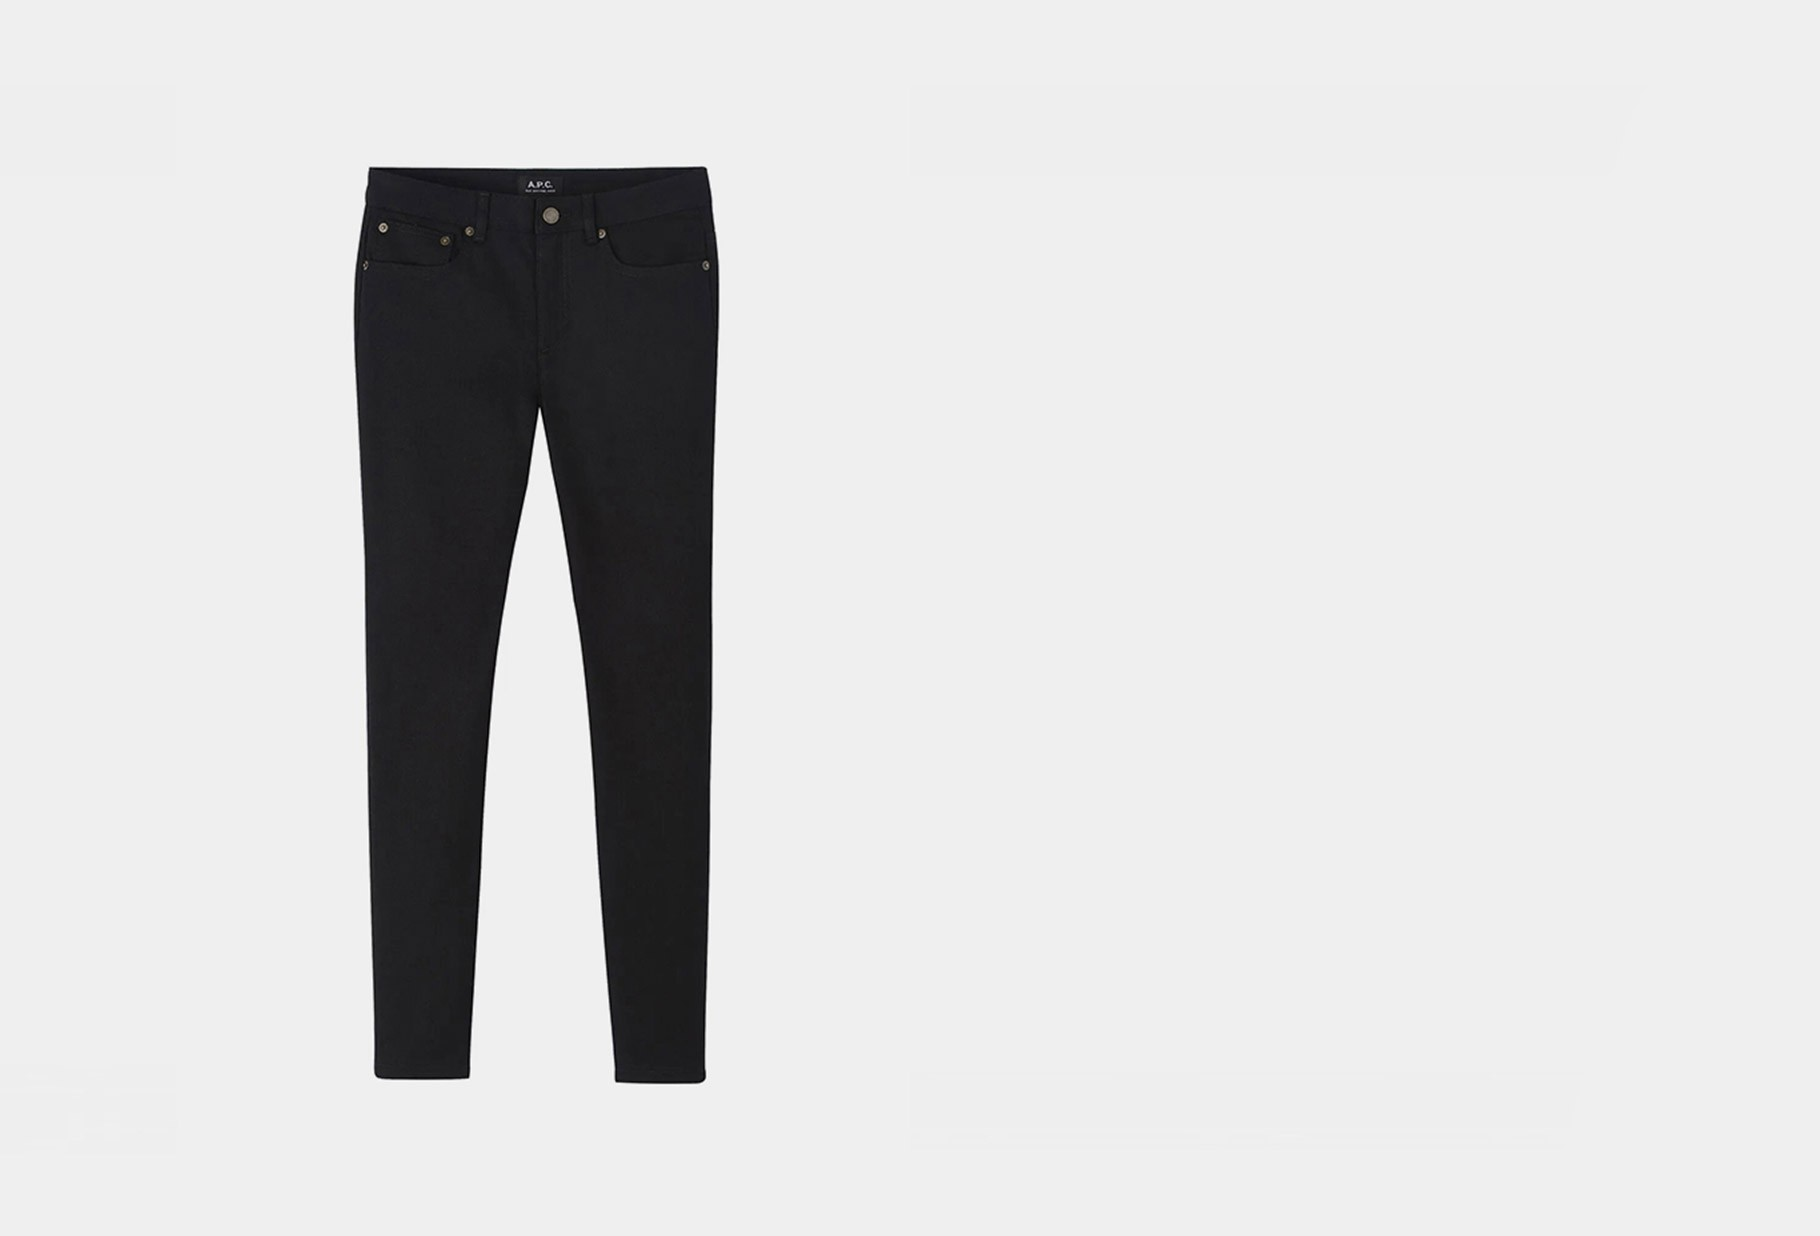 A.P.C. FOR WOMAN / High standard Noir